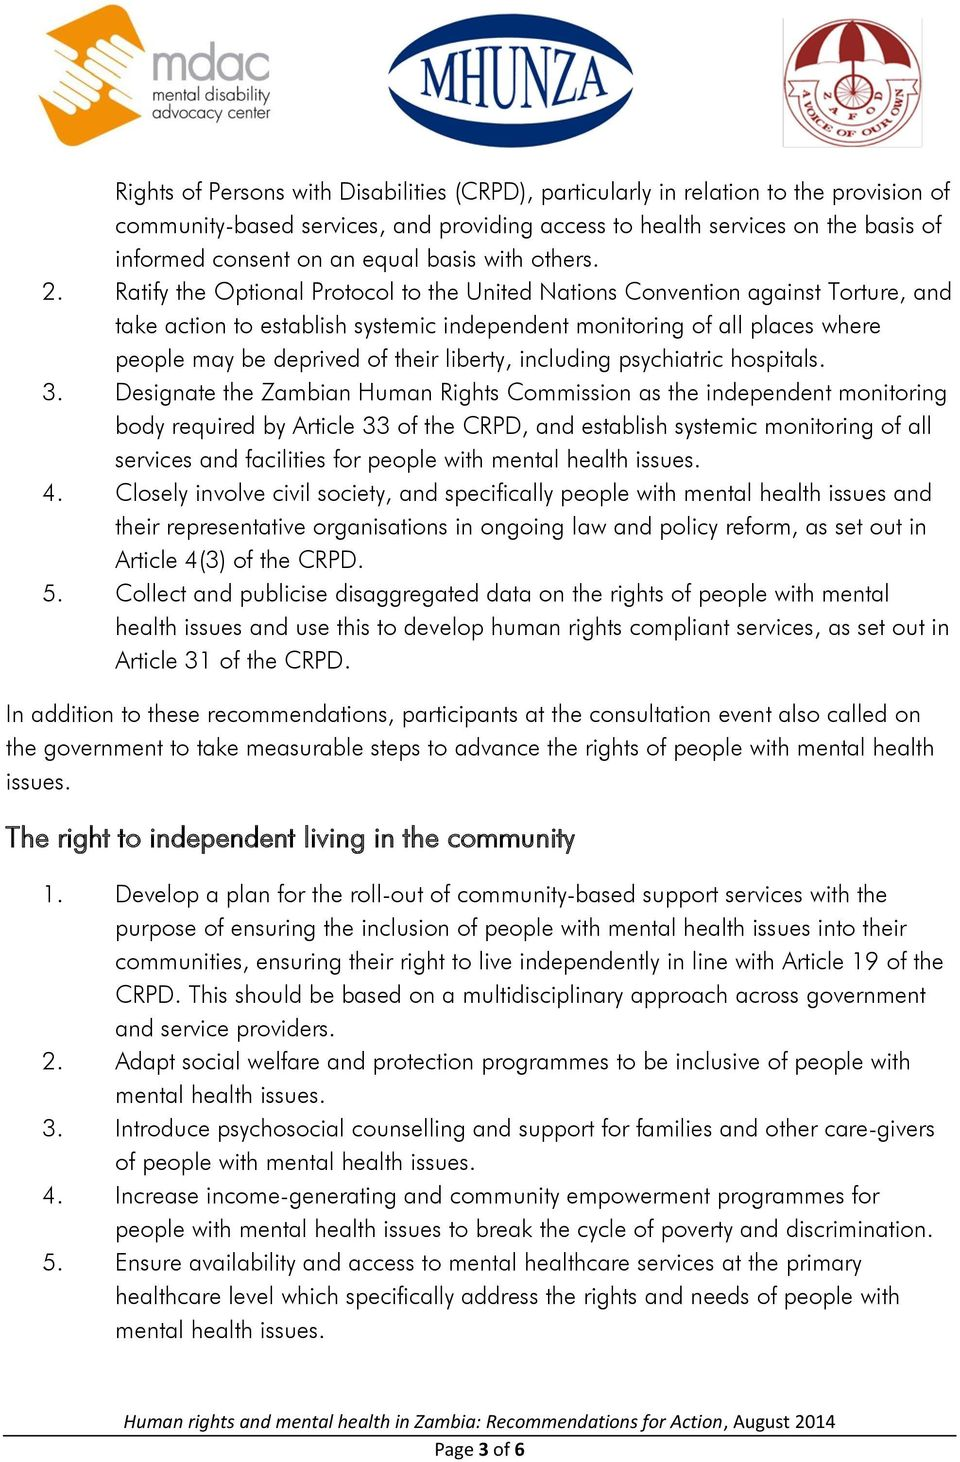 Ratify the Optional Protocol to the United Nations Convention against Torture, and take action to establish systemic independent monitoring of all places where people may be deprived of their